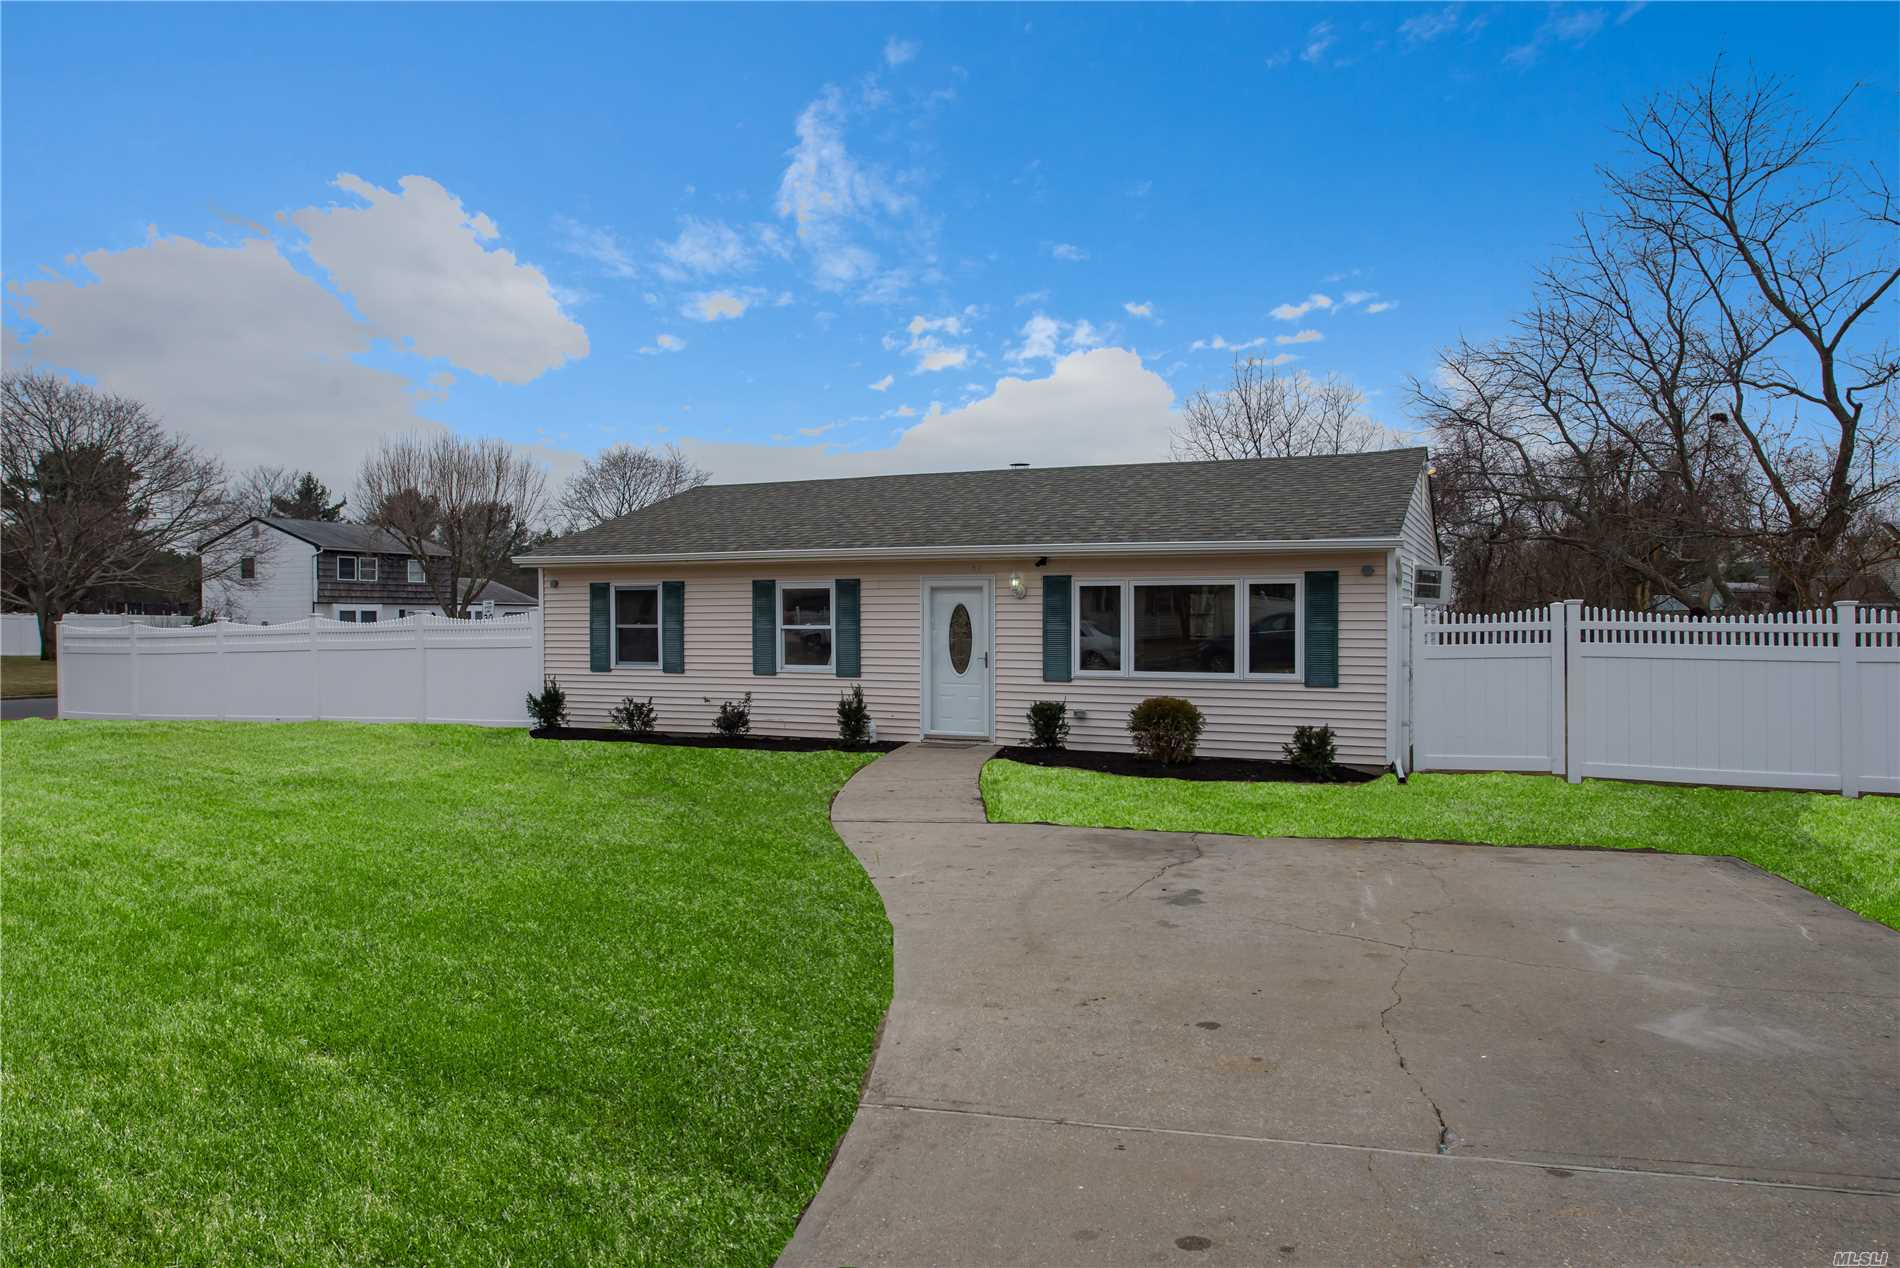 Perfect Starter Home. Don't Miss This 3Br, 1 Ba, Ranch!!Home Features Walnut Kitchen, Ss Appliances, Granite Counters, And Hand Scraped Floors. Home Has Newer Roof, Siding, And Windows. New Pvc Fencing. All On A Corner Lot. This Home Will Not Last!